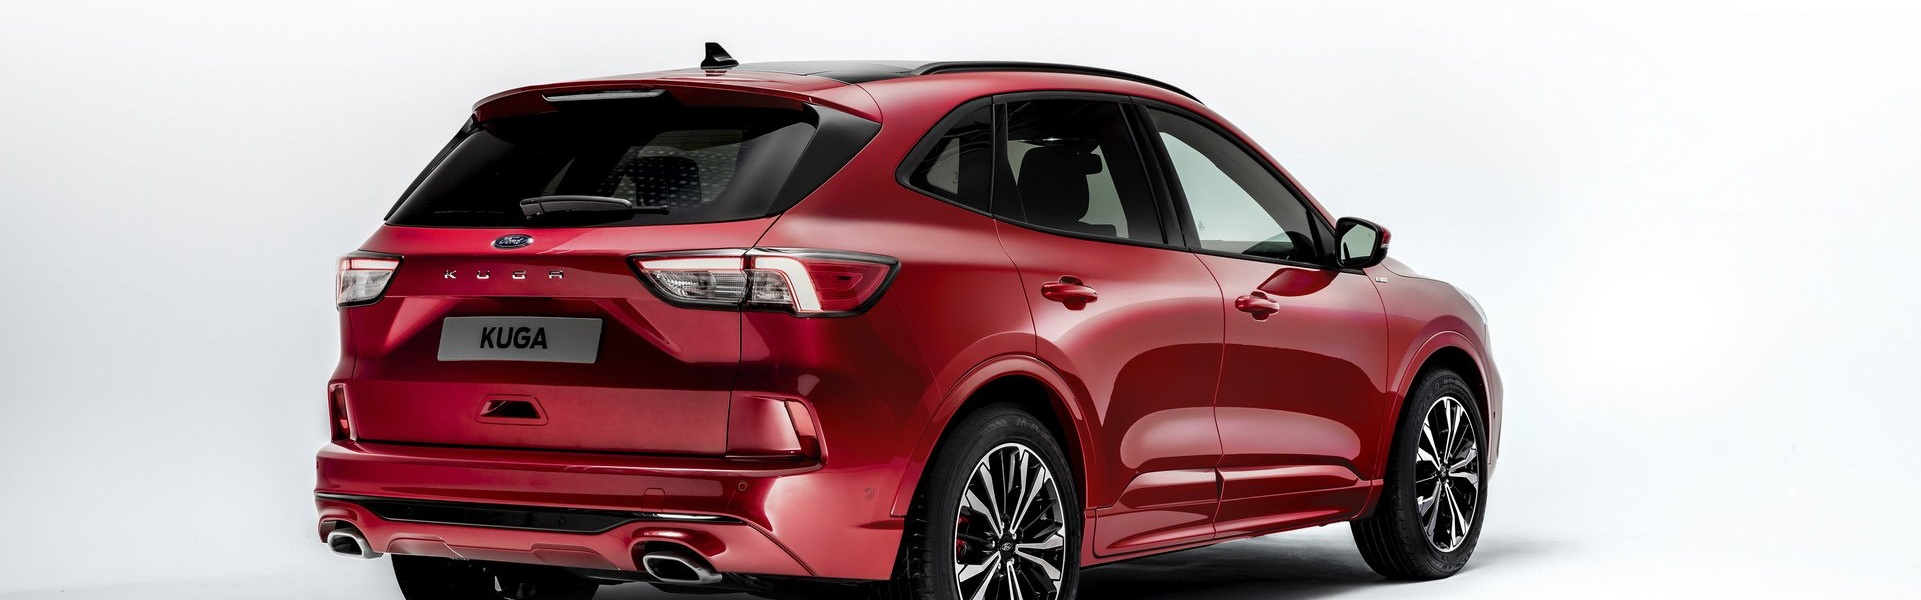 2019-ford-kuga-2020-ford-escape-5.jpg